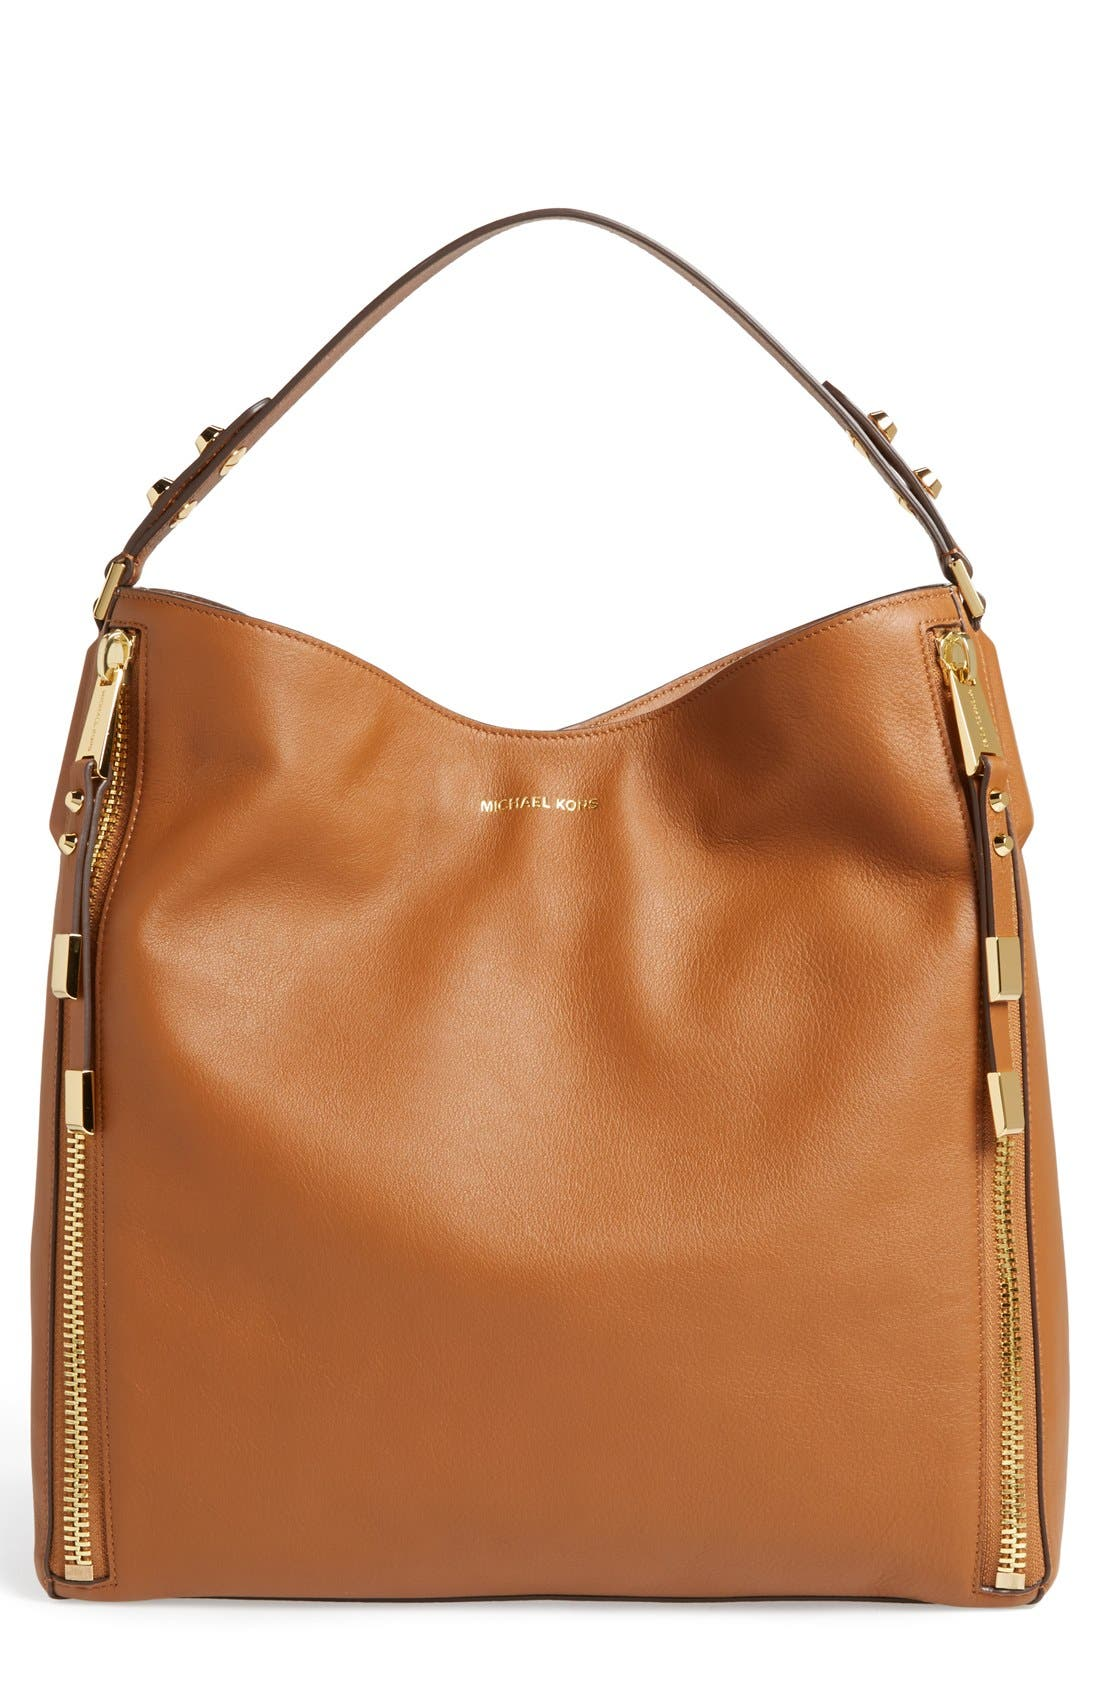 Alternate Image 1 Selected - Michael Kors 'Miranda - Zips' Leather Hobo